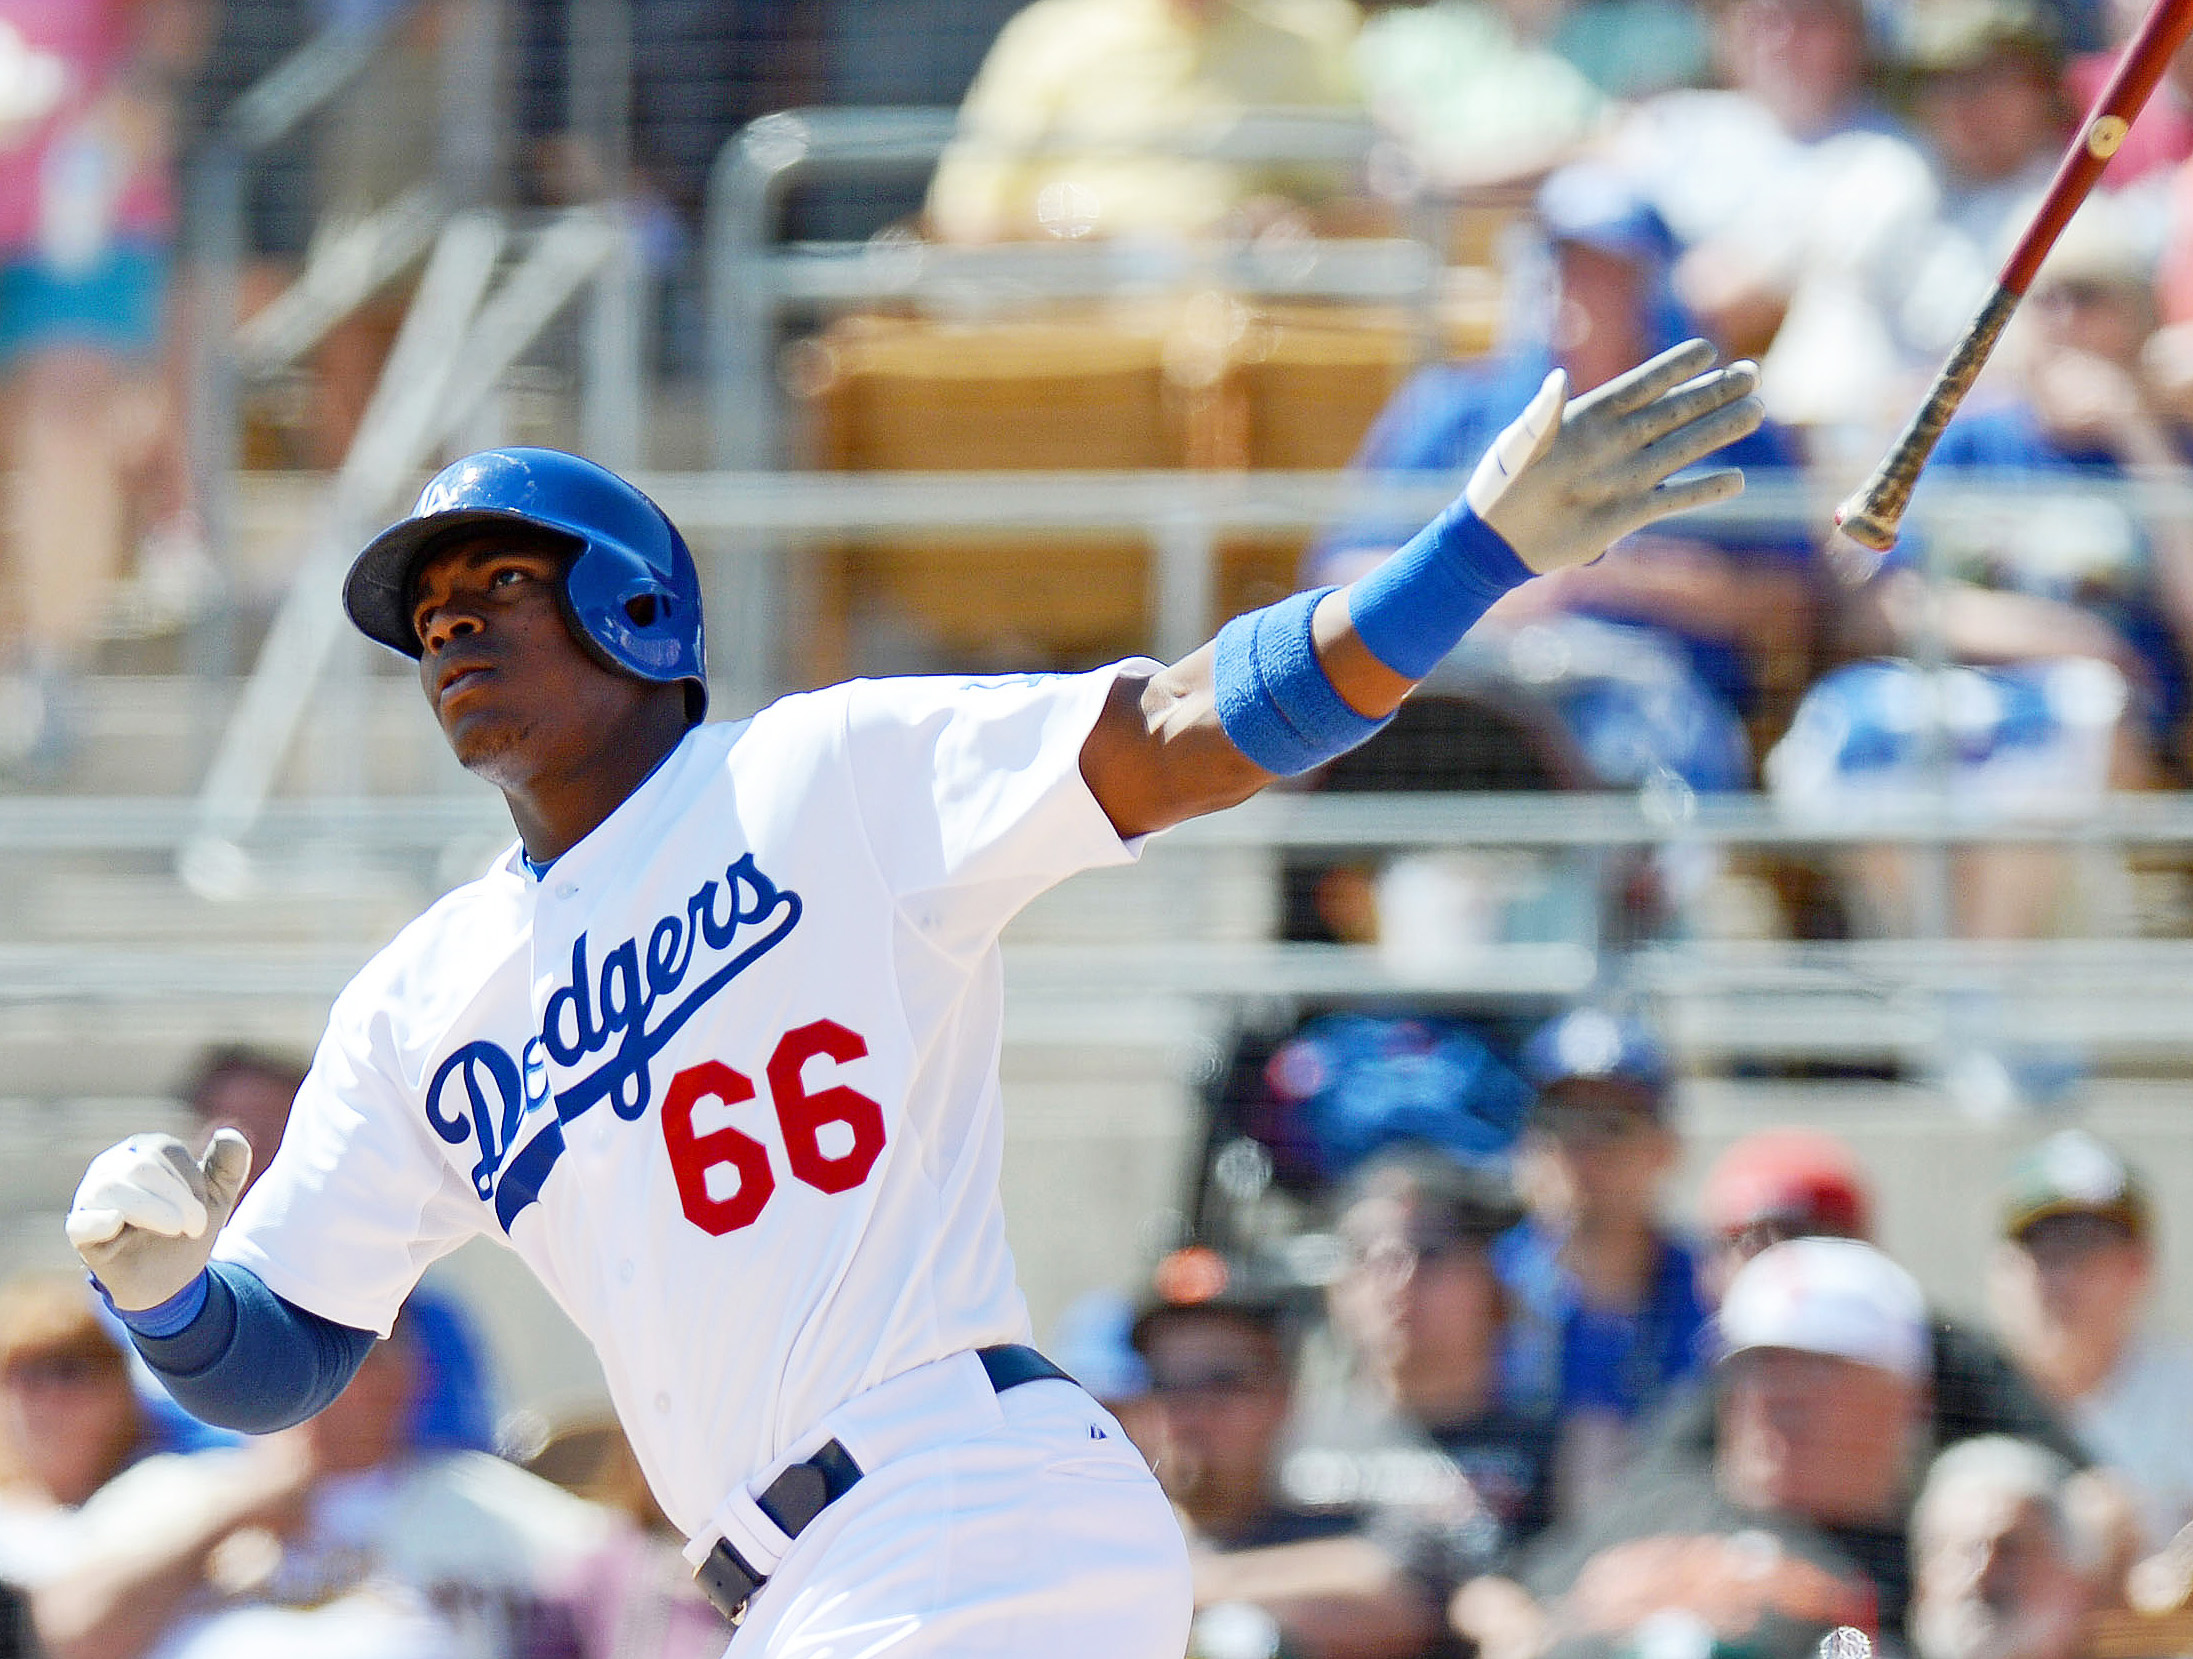 Yasiel Puig has hit .521 in spring training for the Dodgers. (USA Today Sports)